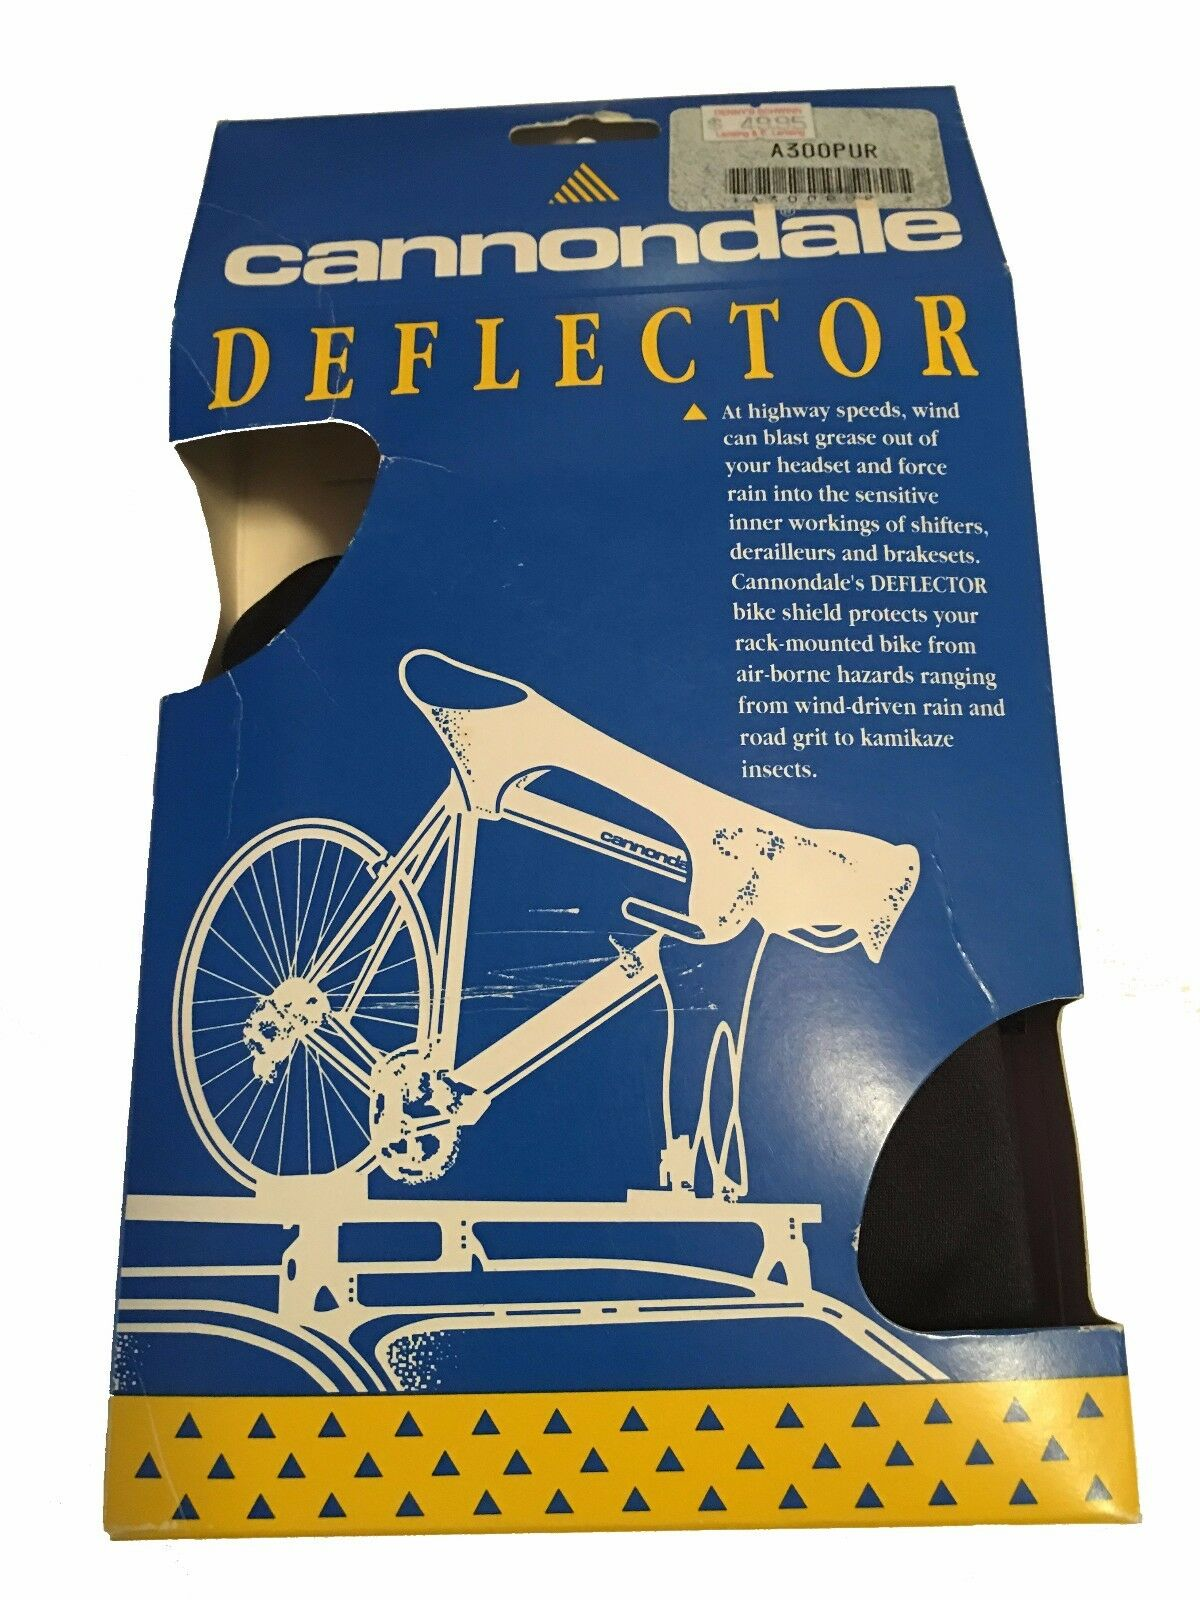 Cannondale Bike Deflector Protects Your Rack Mounted Bike From Airborne Hazards